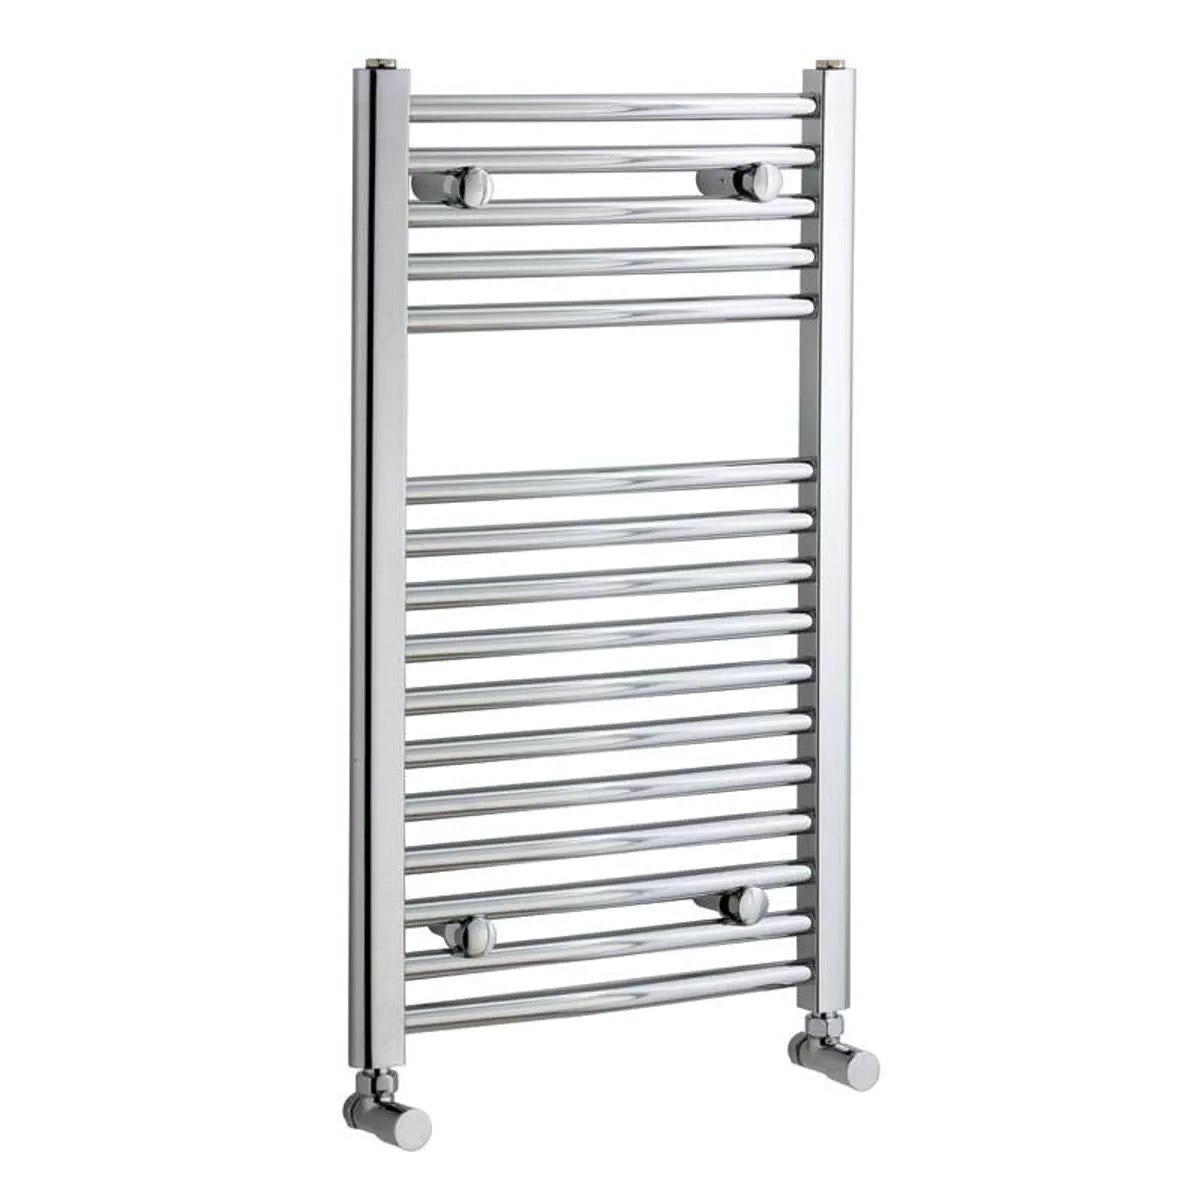 Orchard Elsdon heated towel rail 750 x 450 offer pack